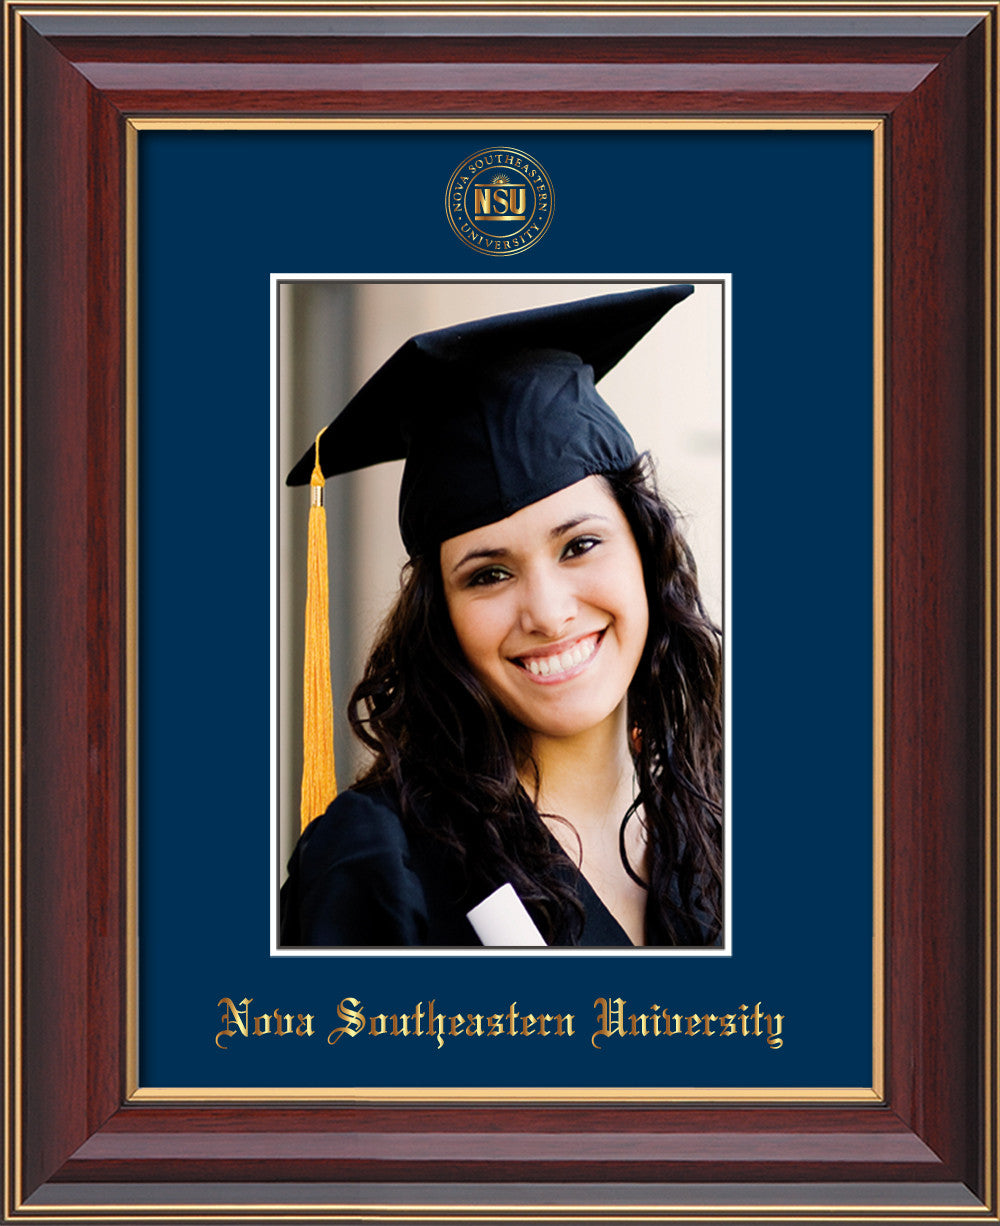 Nova Southeastern University Seal 5 x 7 Photo Frame